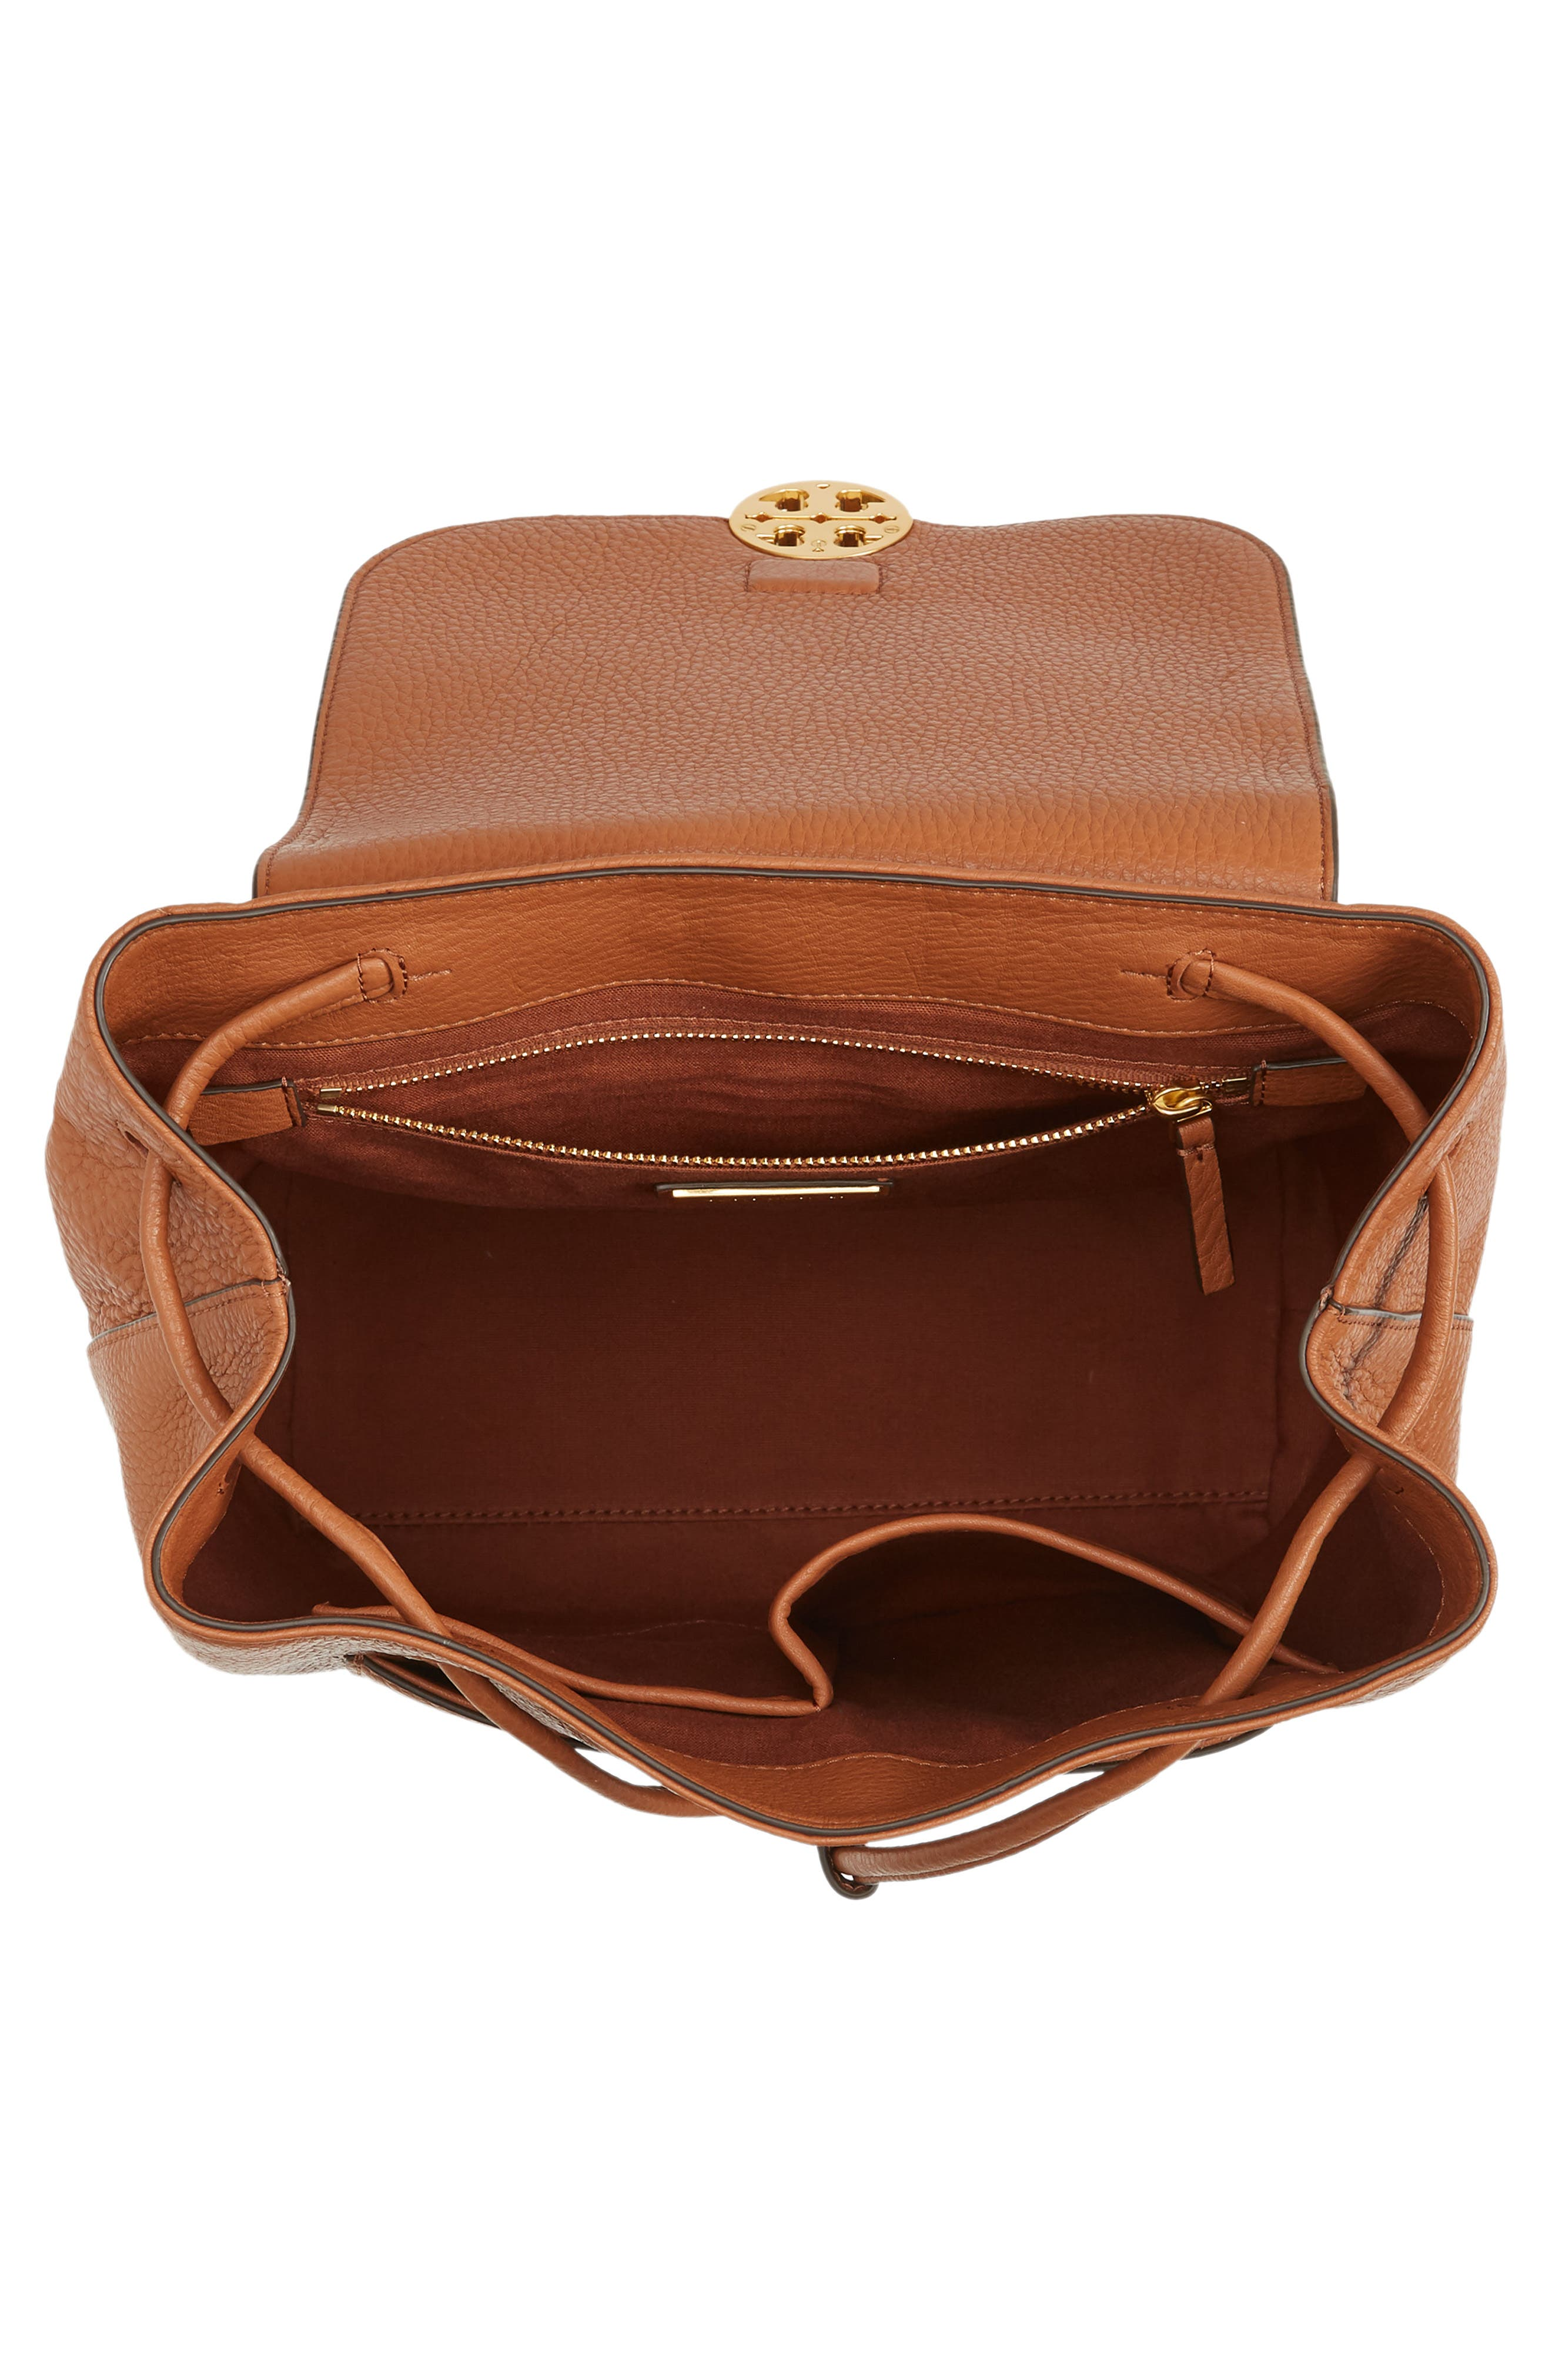 Chelsea Leather Backpack,                             Alternate thumbnail 4, color,                             Classic Tan